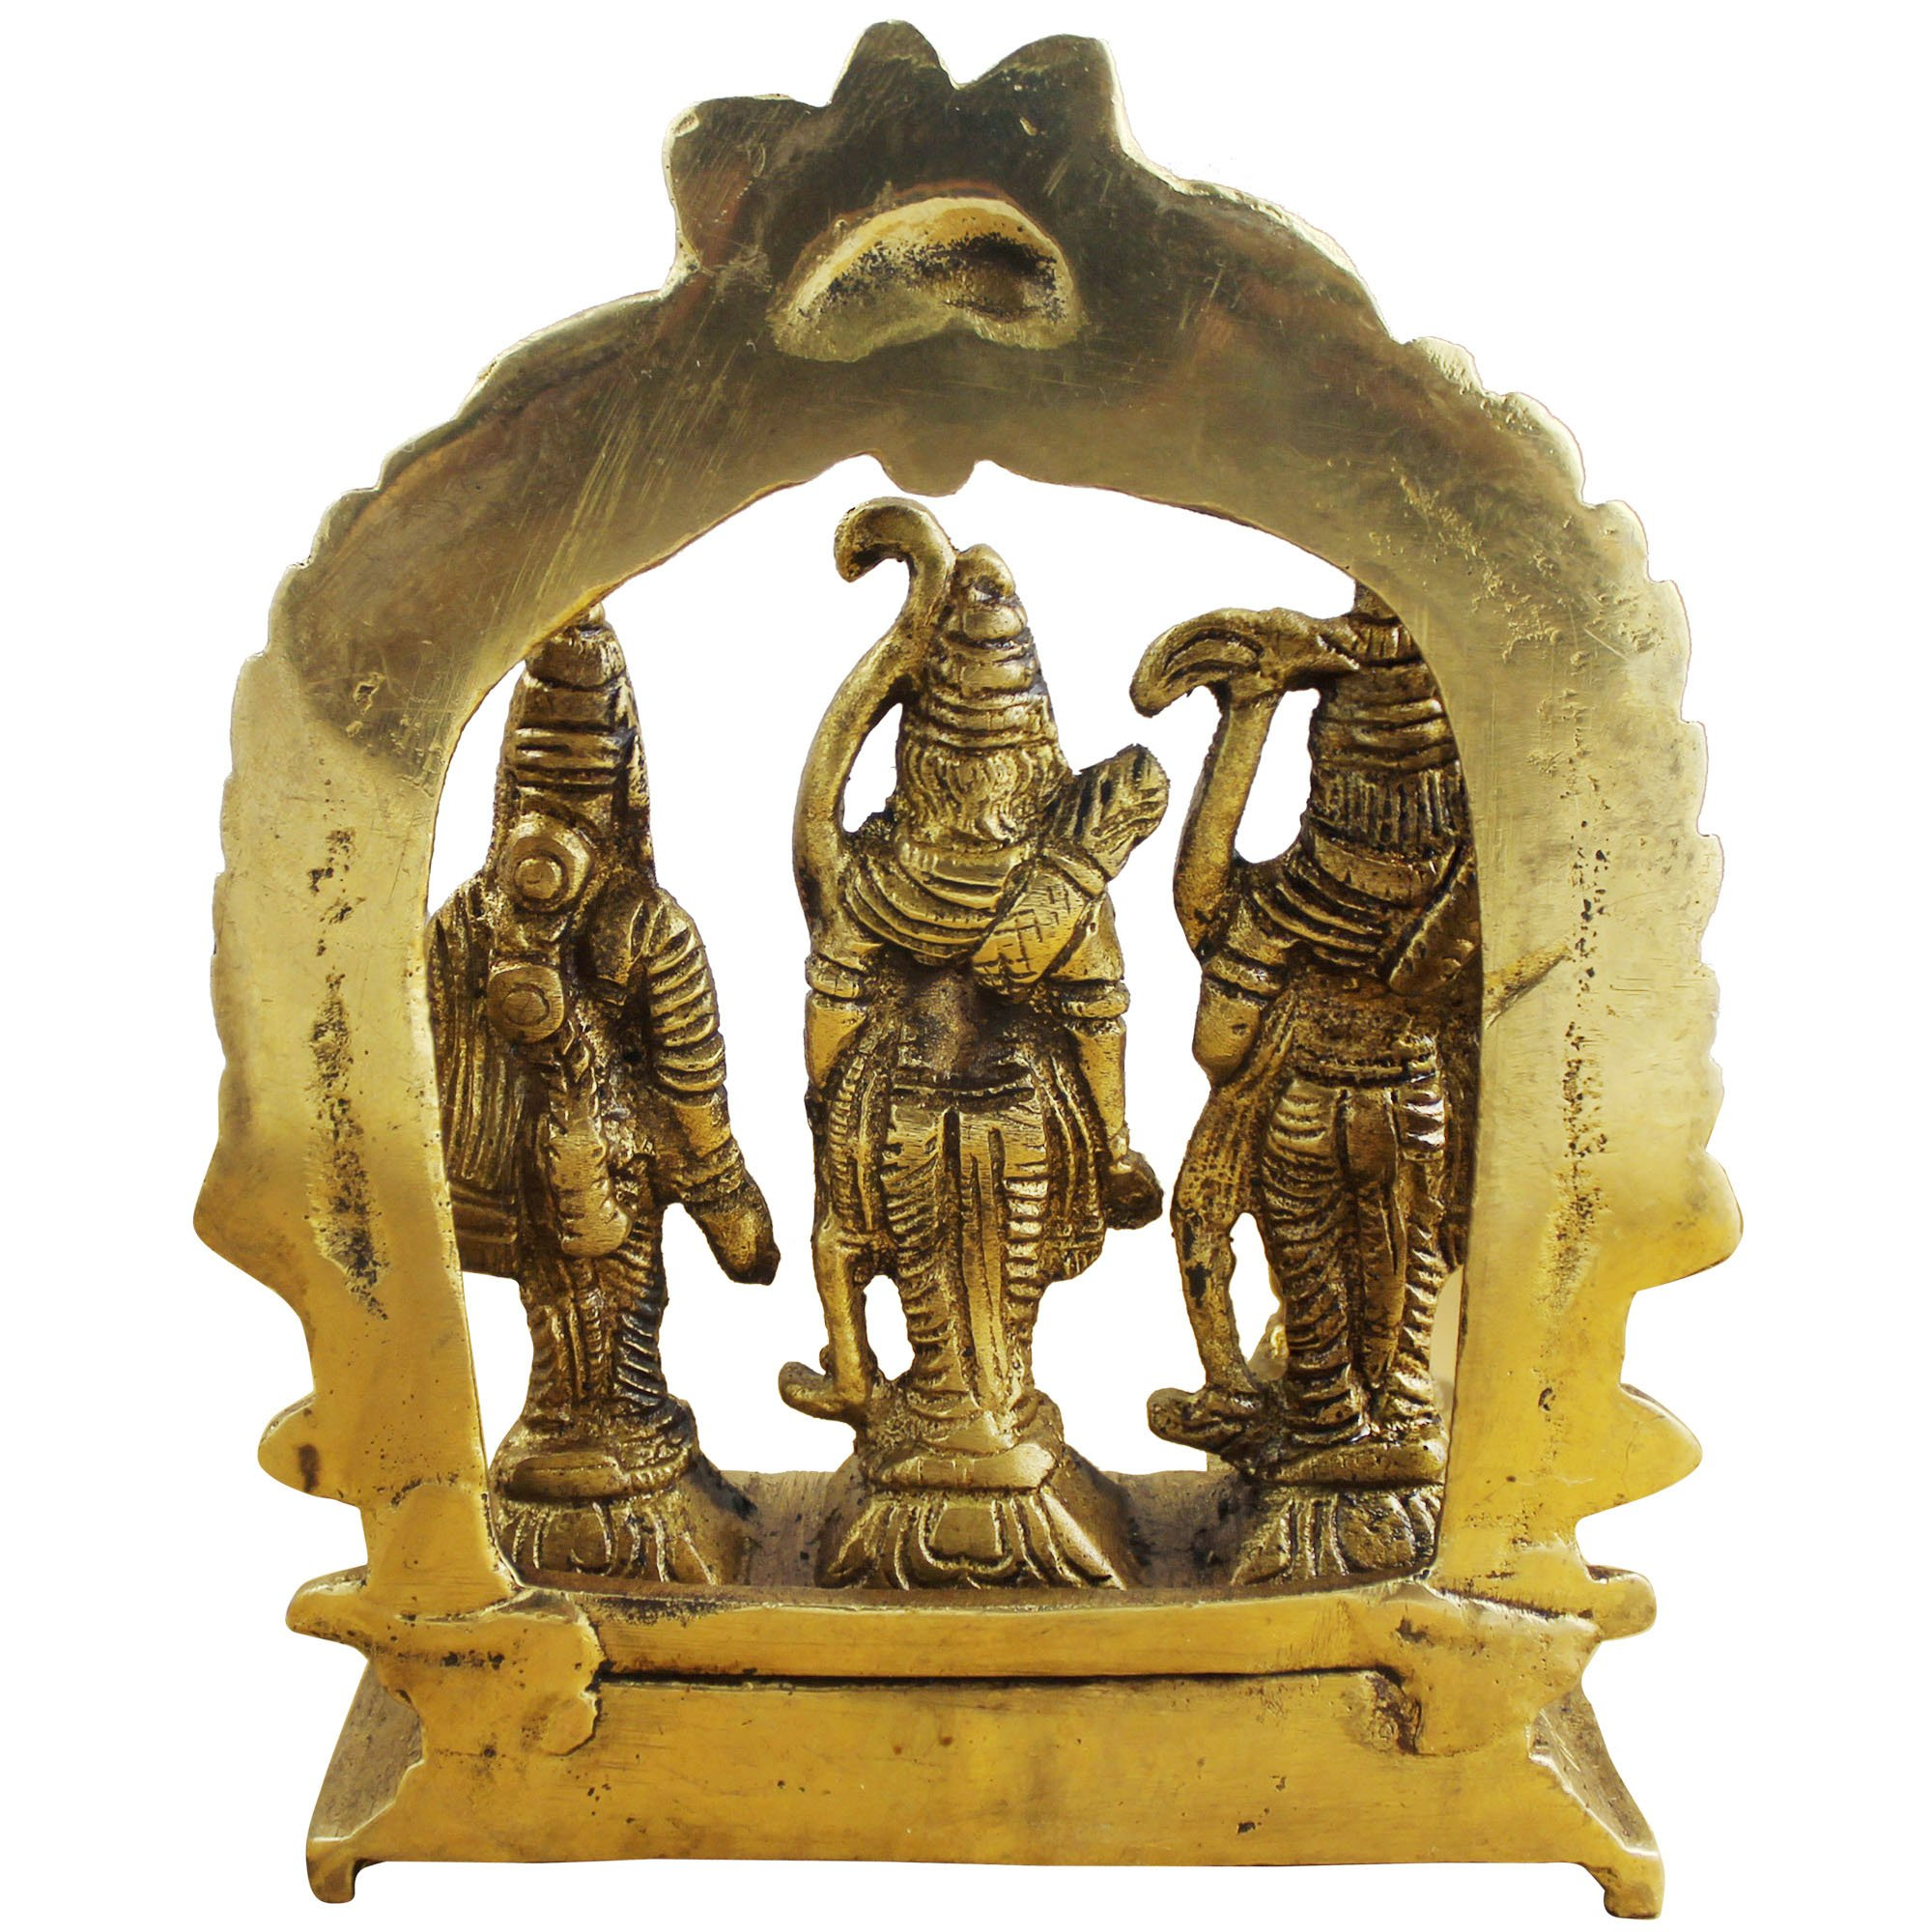 Hindu Gods and Goddesses - Lord Rama Laxman and Sita Religious Indian Art Sculpture - 3.1'' x 3'' x 1'' by RoyaltyLane (Image #4)